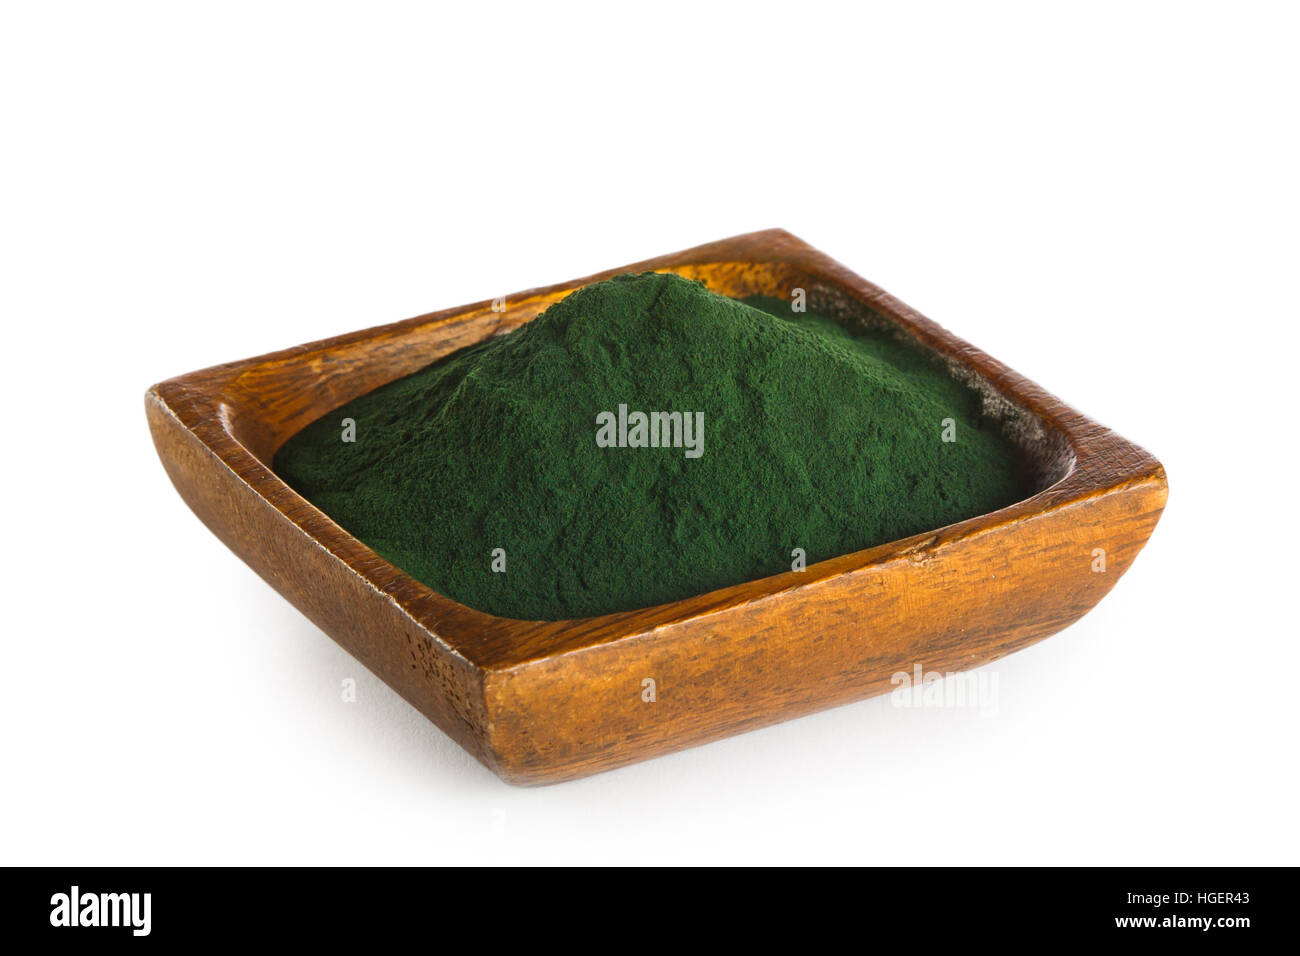 Spirulina powder in wooden bowl isolated on white background. Superfood - Stock Image